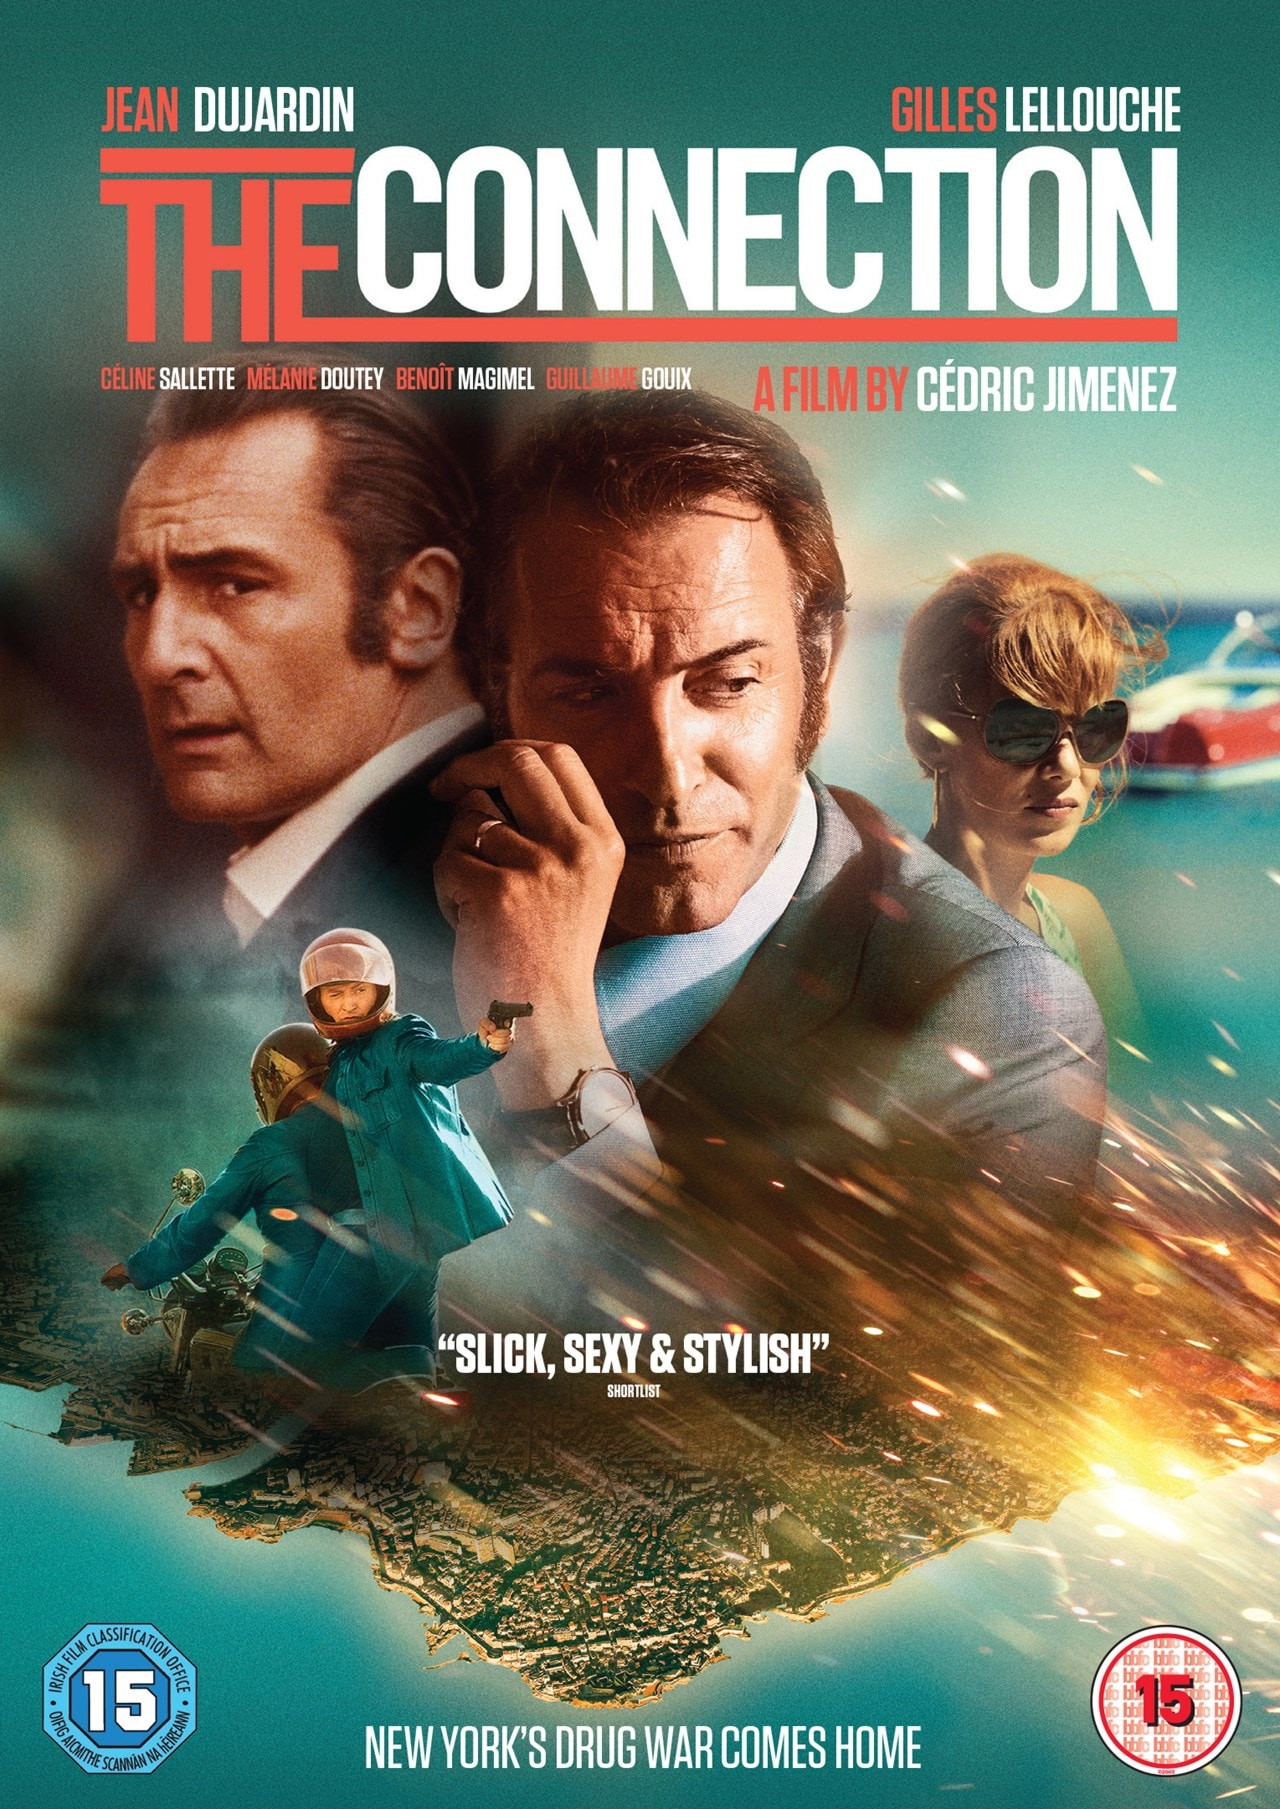 The Connection - 1